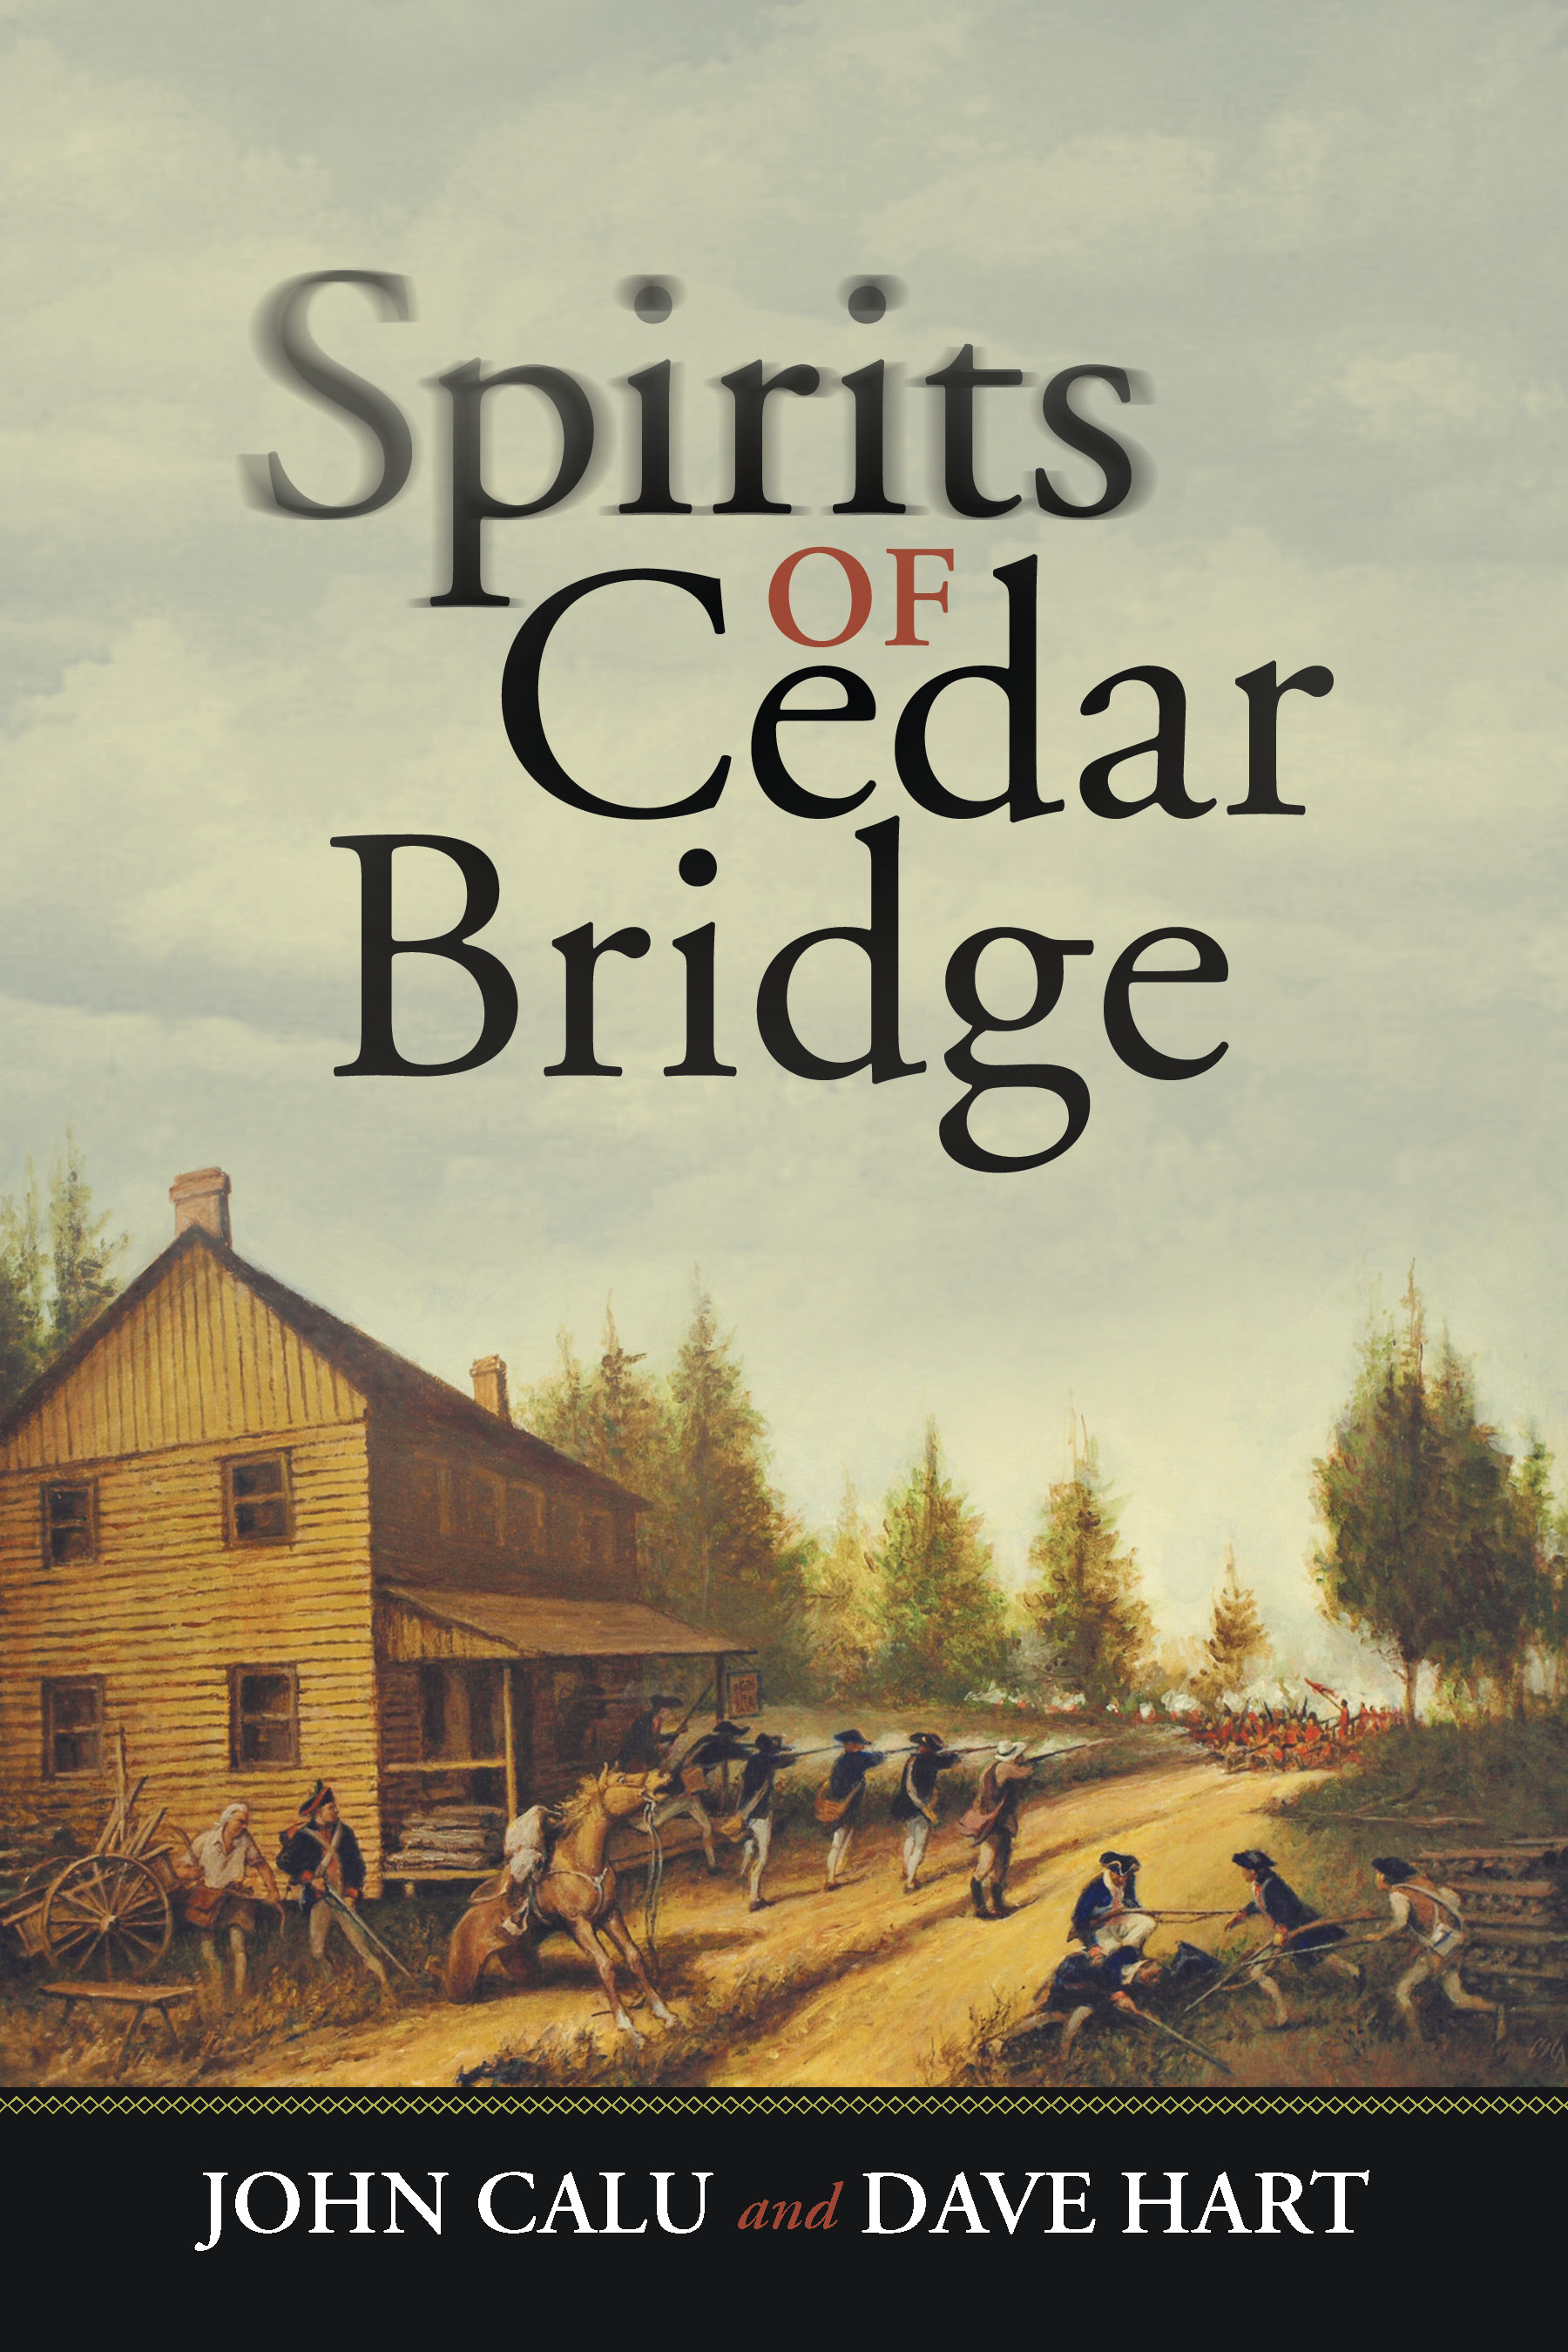 Spirits of Cedar Bridge